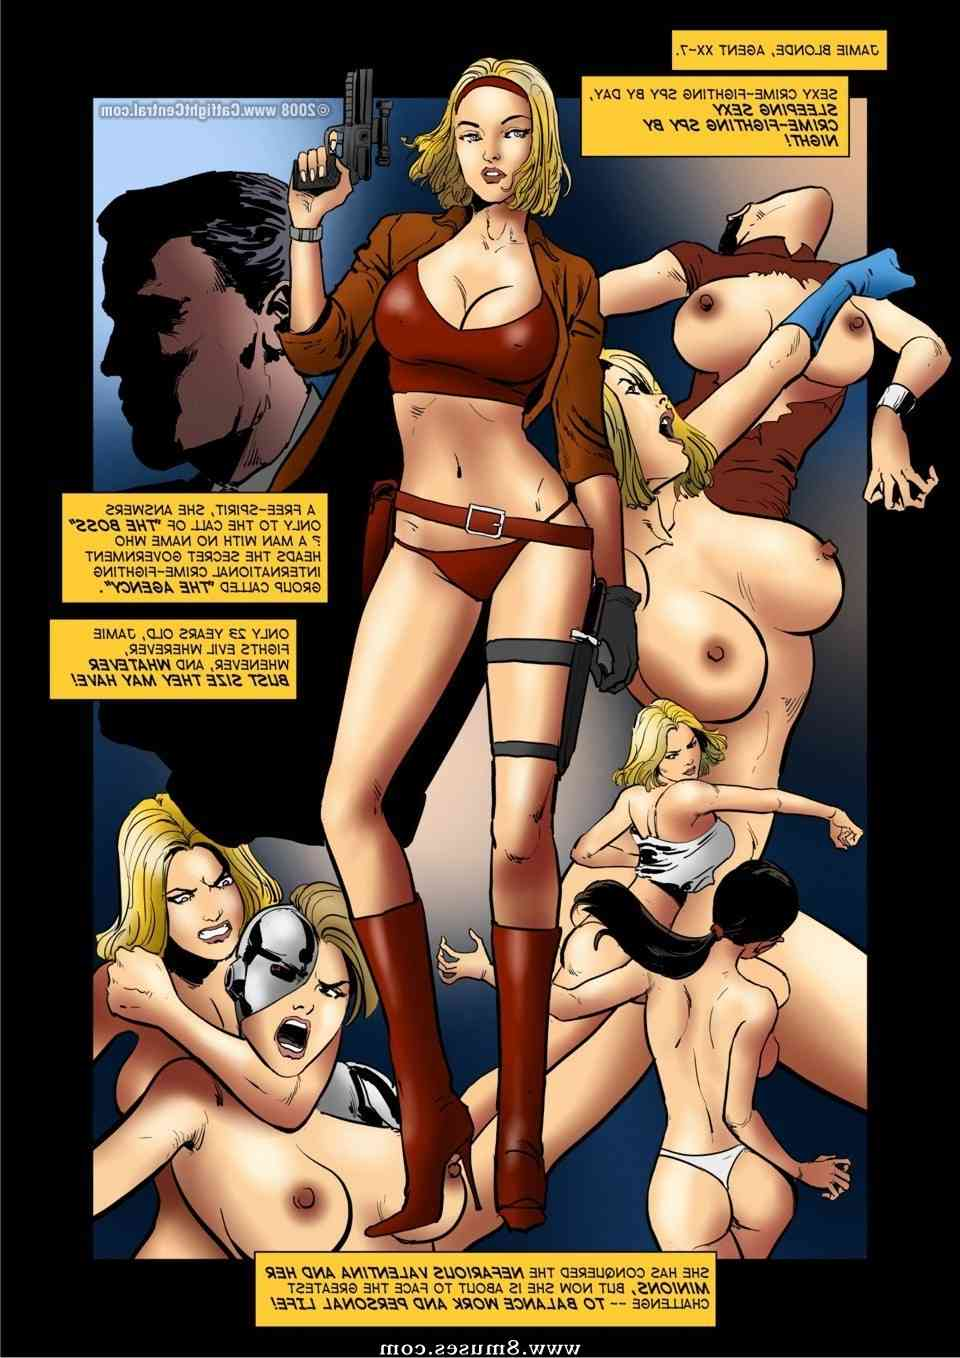 Central-Comics/Catfight-Central/Jamie-Blonde Jamie_Blonde__8muses_-_Sex_and_Porn_Comics_2.jpg